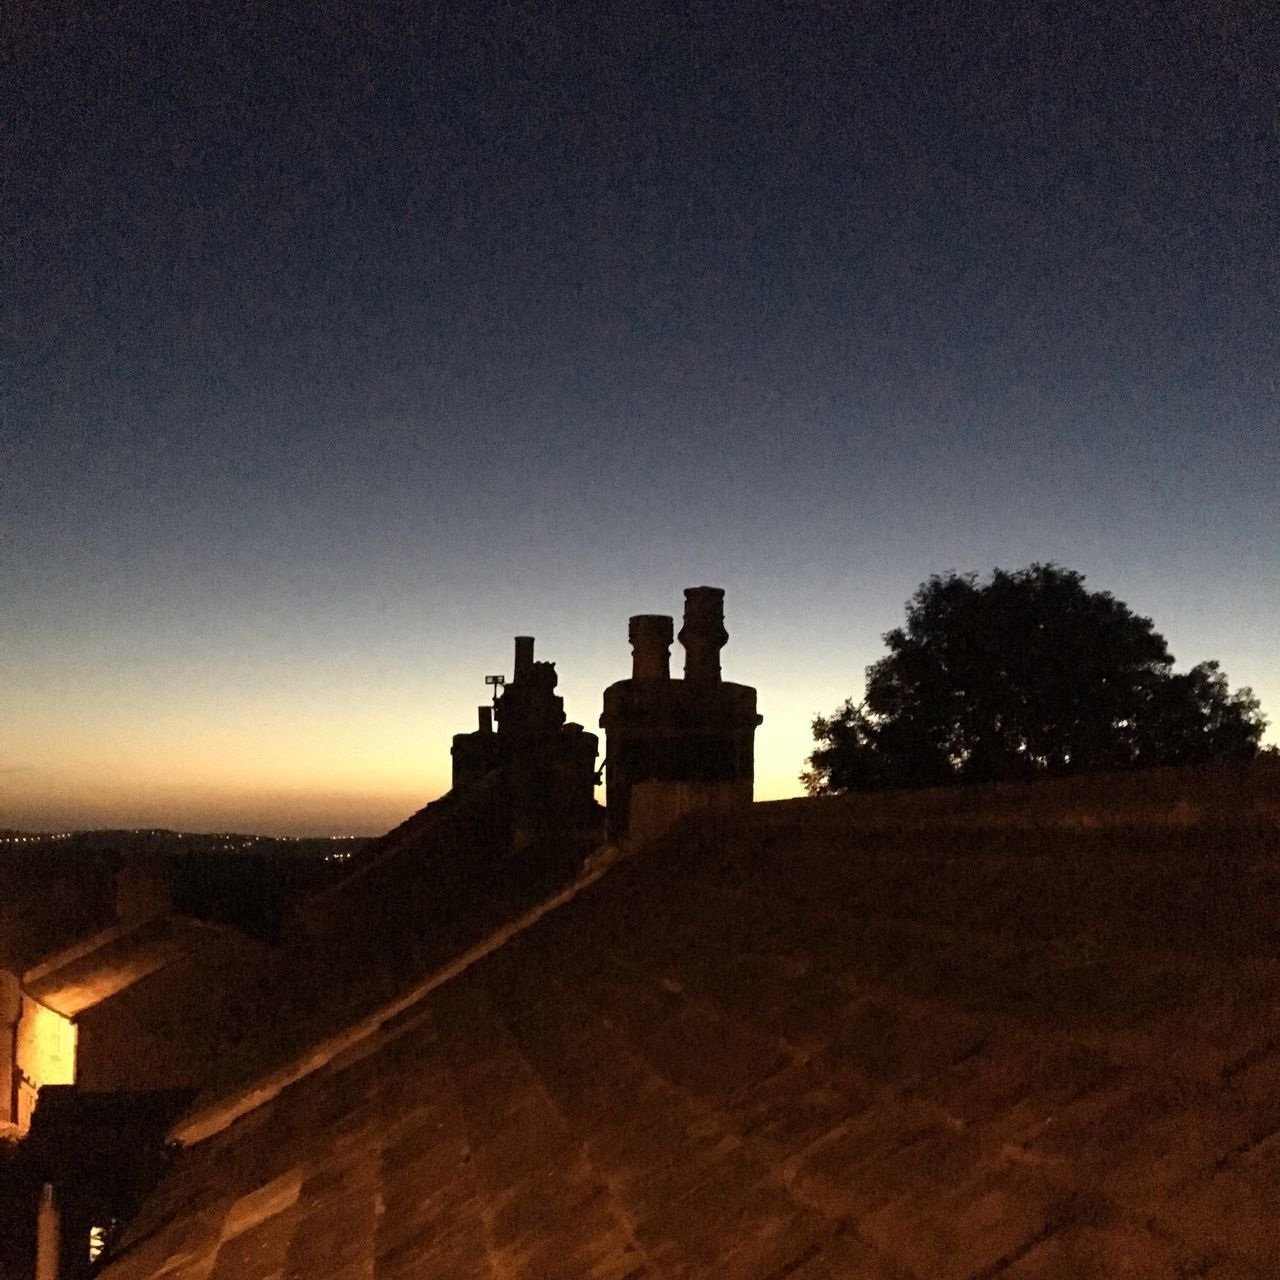 sky, architecture, built structure, building exterior, nature, no people, building, copy space, silhouette, tree, history, sunset, the past, plant, outdoors, clear sky, fort, dusk, landscape, scenics - nature